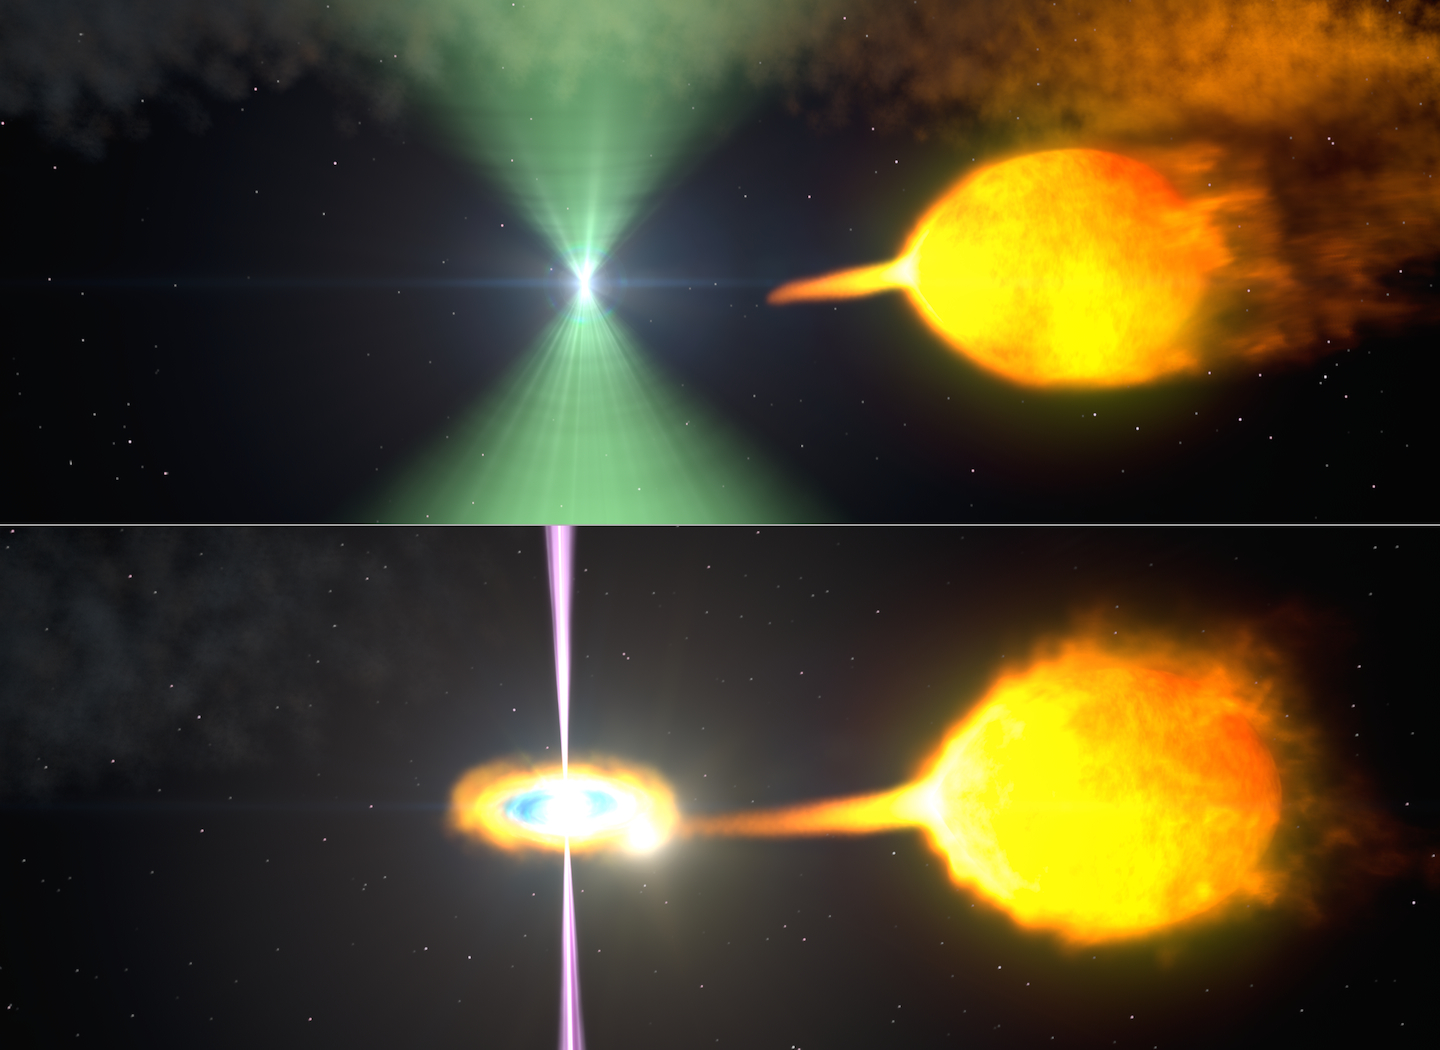 Depiction of a companion star getting torn apart into the Black Widow pulsar's spinning web of destruction! Image credit: NASA Goddard Space Flight Center